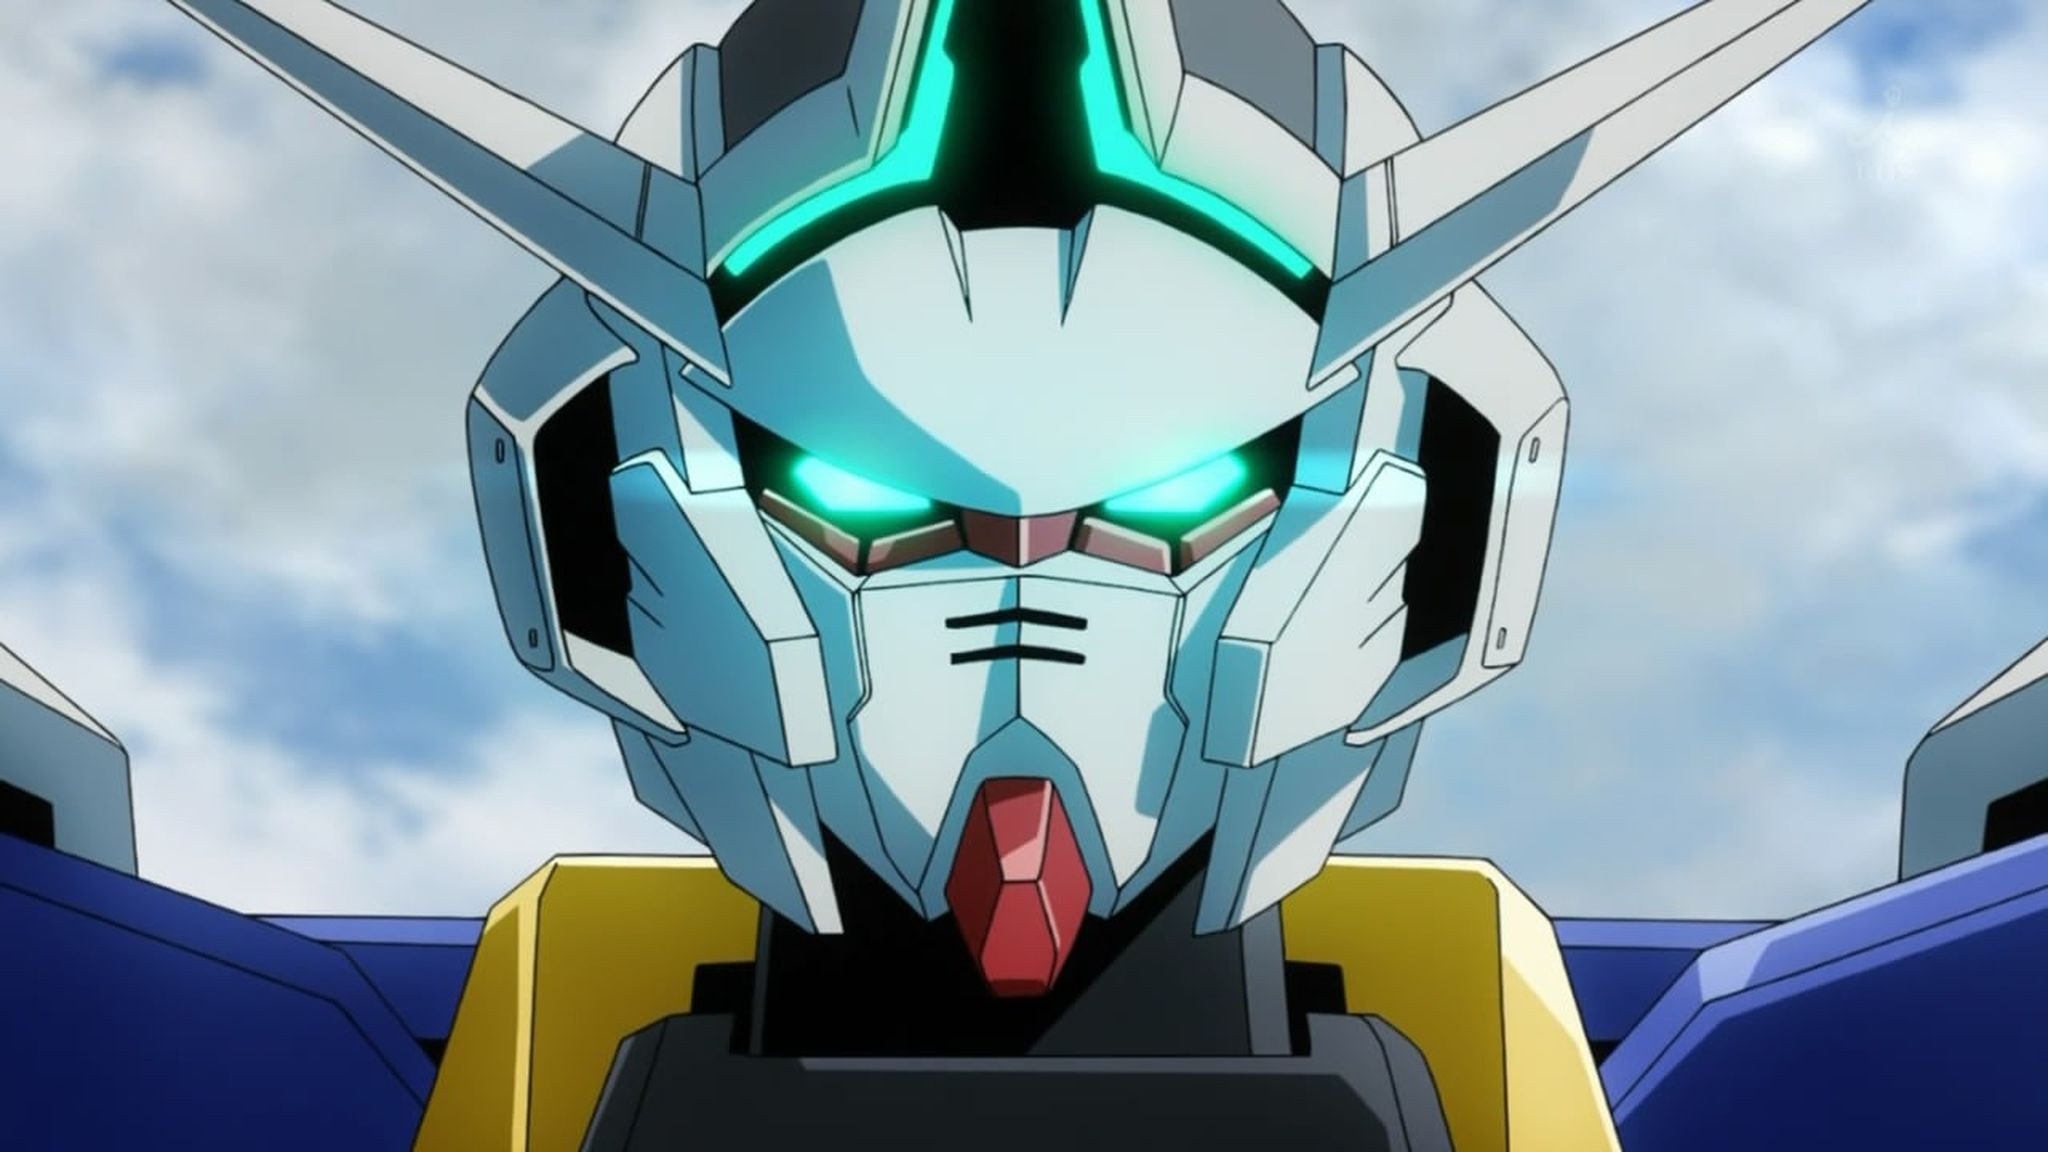 Featured image for Why do We Love Giant Robot? (Food for Thoughts)